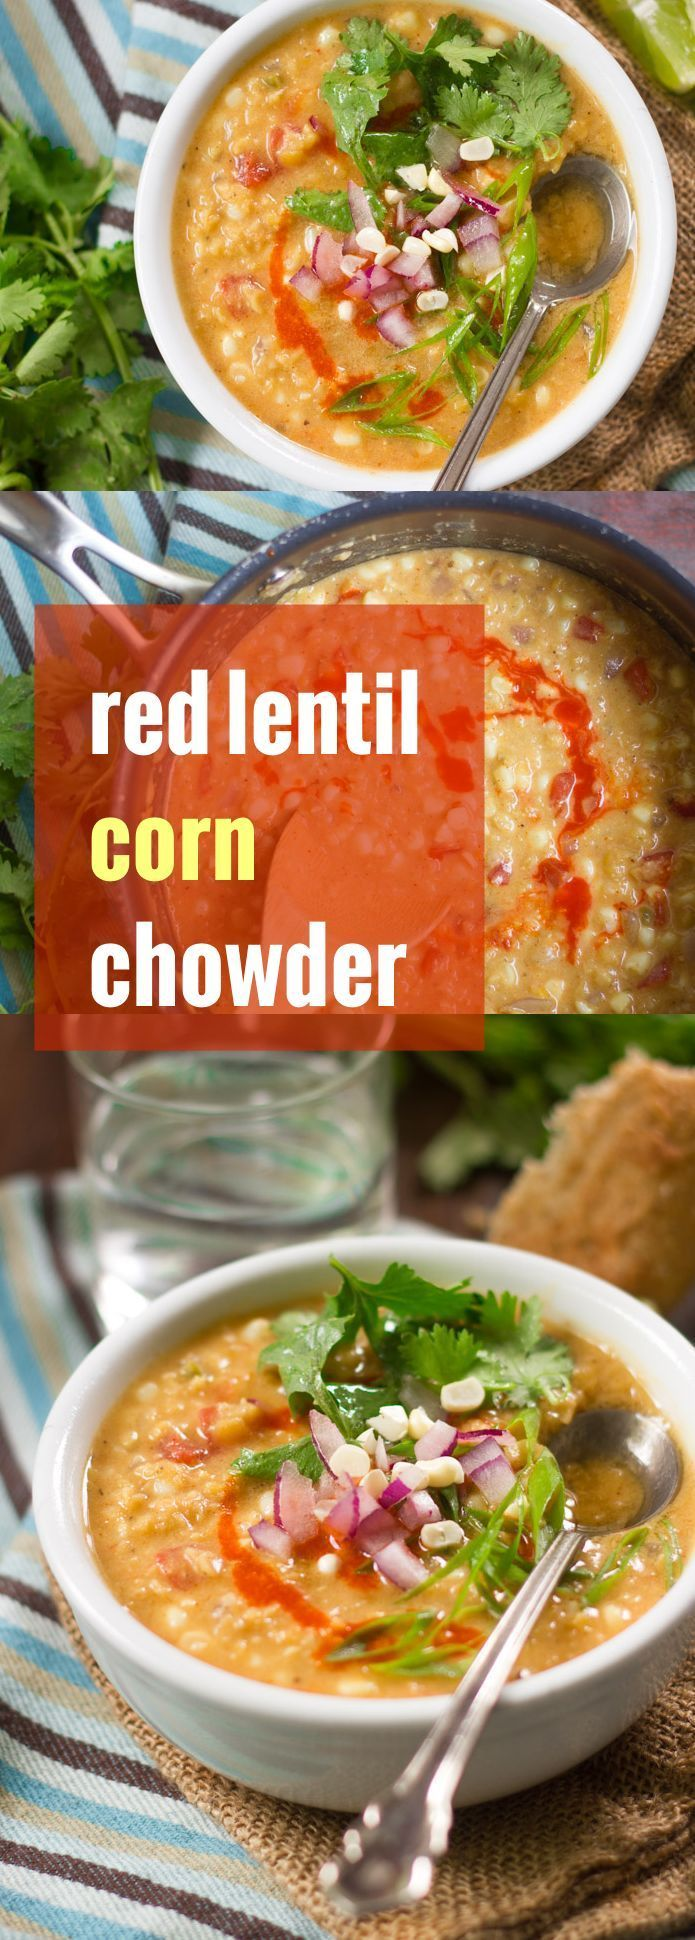 Hearty red lentils and sweet summer corn are simmered up with southwestern spices in a coconut milk broth to make this hearty and totally meal-worthy vegan chowder.